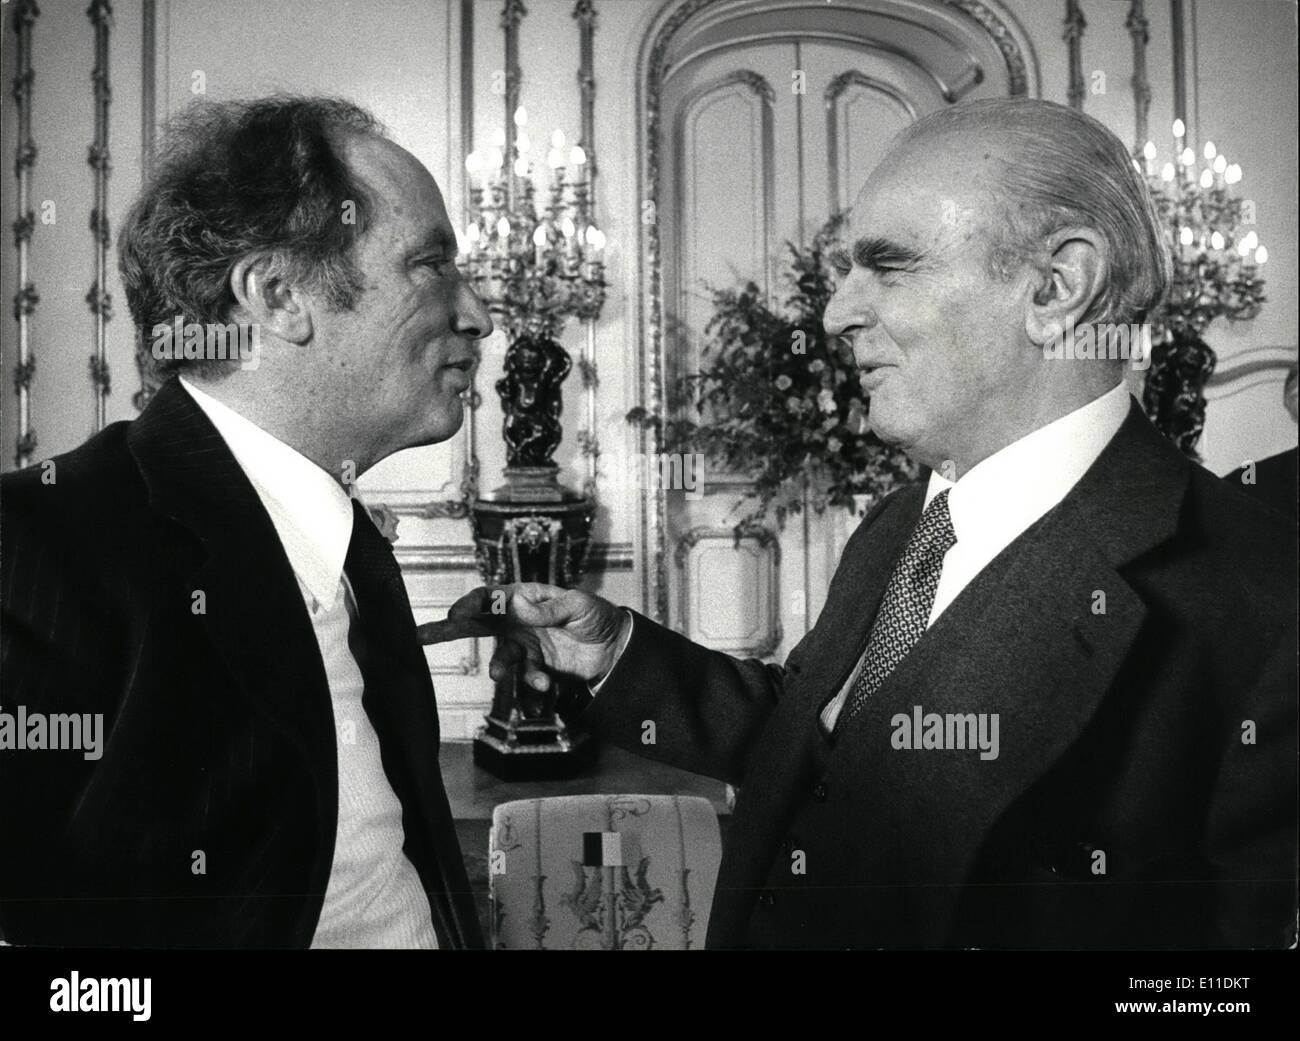 May 05, 1977 - Ministerial meeting of the North Atlantic Treaty Organisation London 10/11 May 1977: This photo is - Stock Image